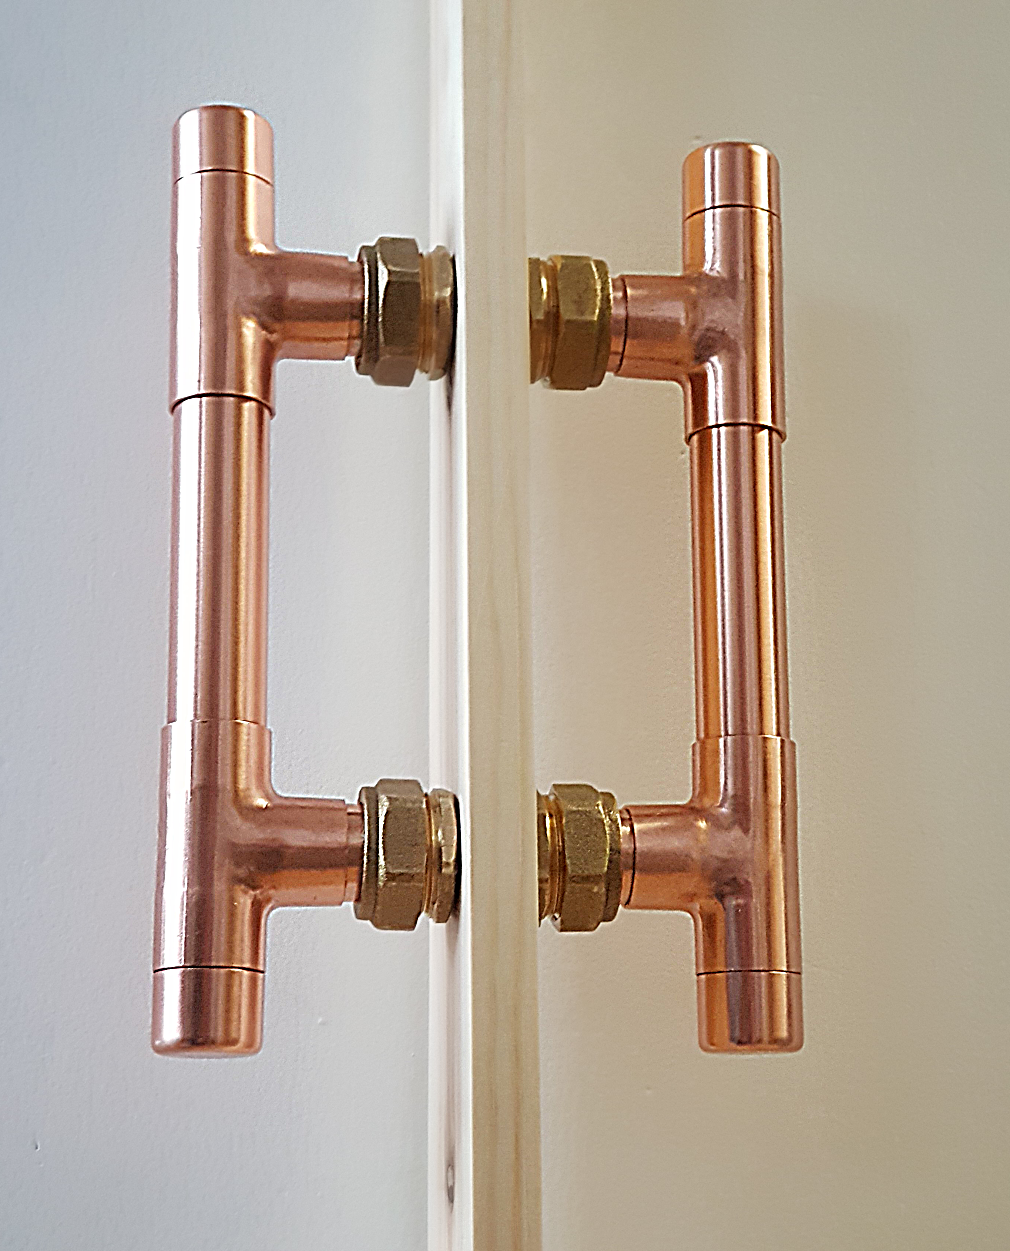 The Copper Door Handle Cleverly Designed To Either Bolt Through The Door Or As A Standard Rear Fixed Door Handle Design Door Handles Sliding Door Handles